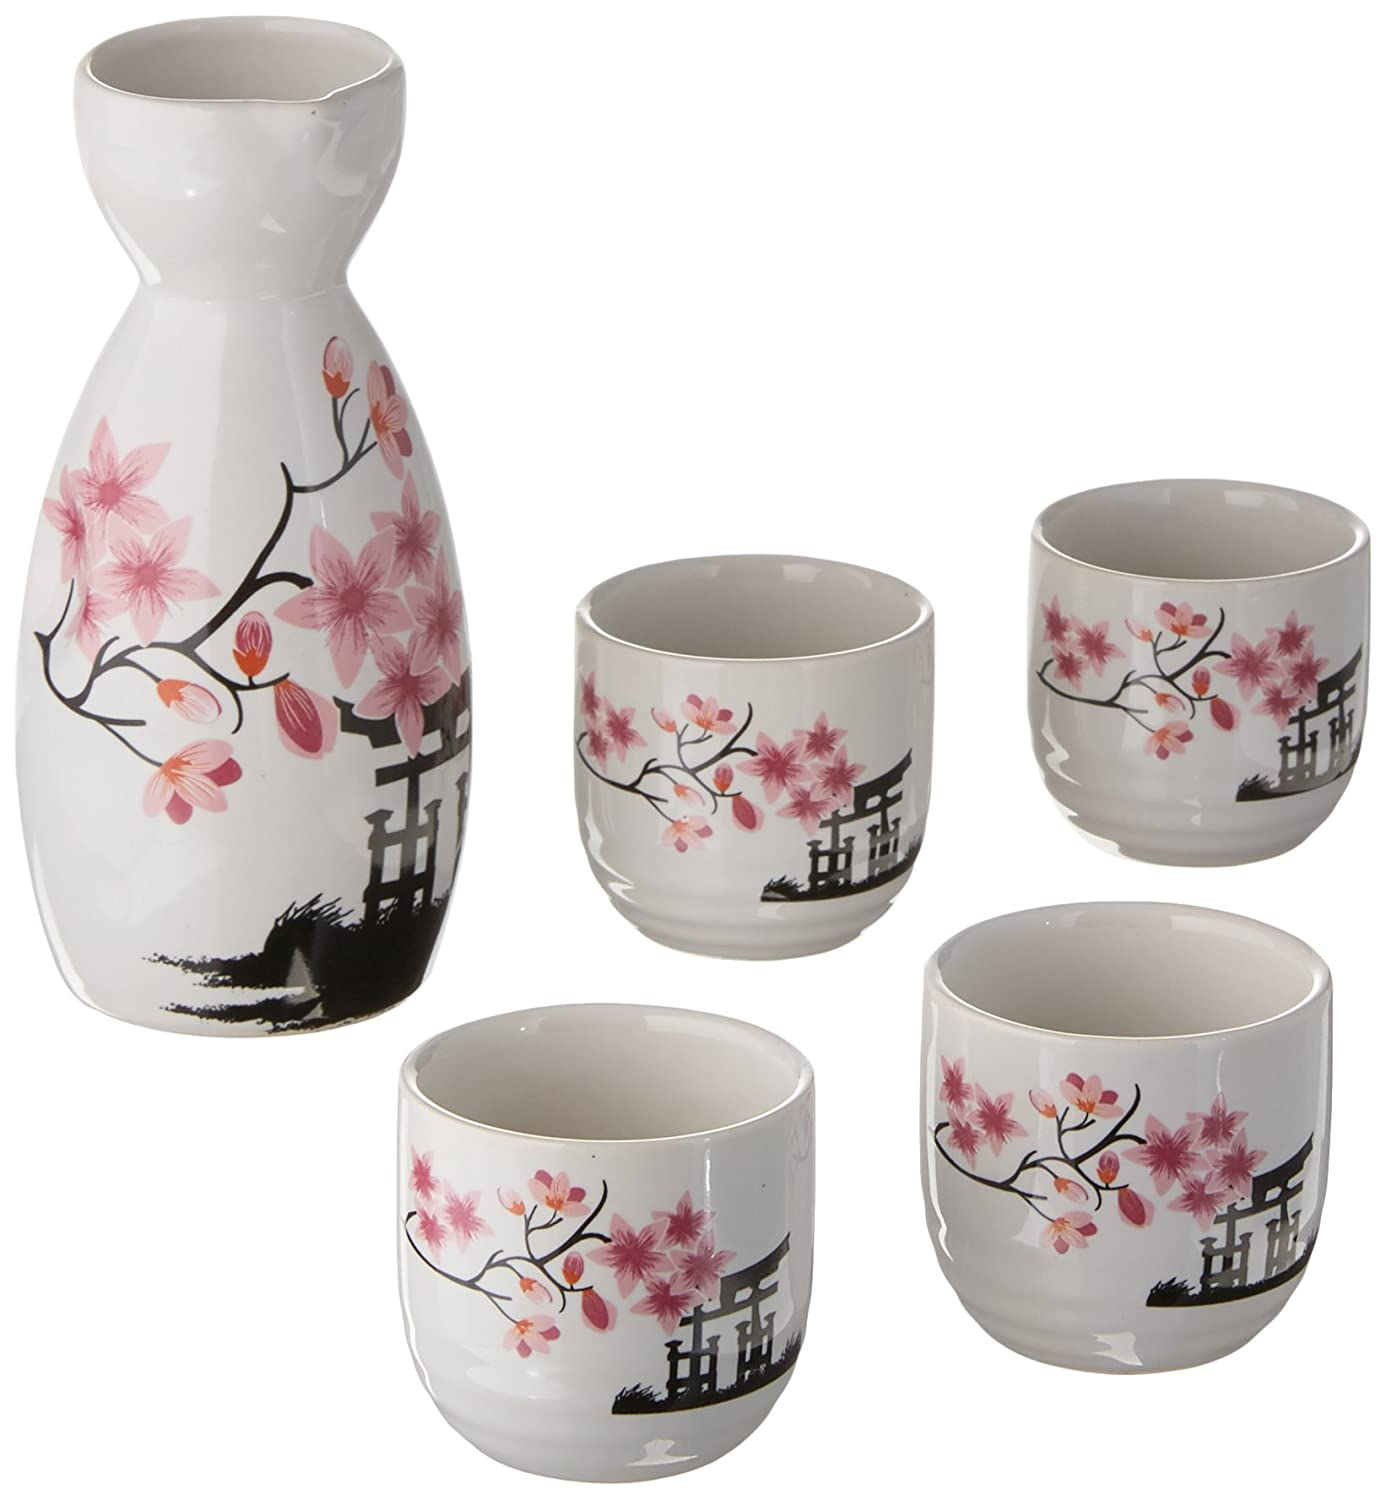 Japanese Sake Set, 5 Pieces Sake Set Hand Painted Design Porcelain Pottery Traditional Ceramic Cups Crafts Wine Glasses (Pink) Pink Sake